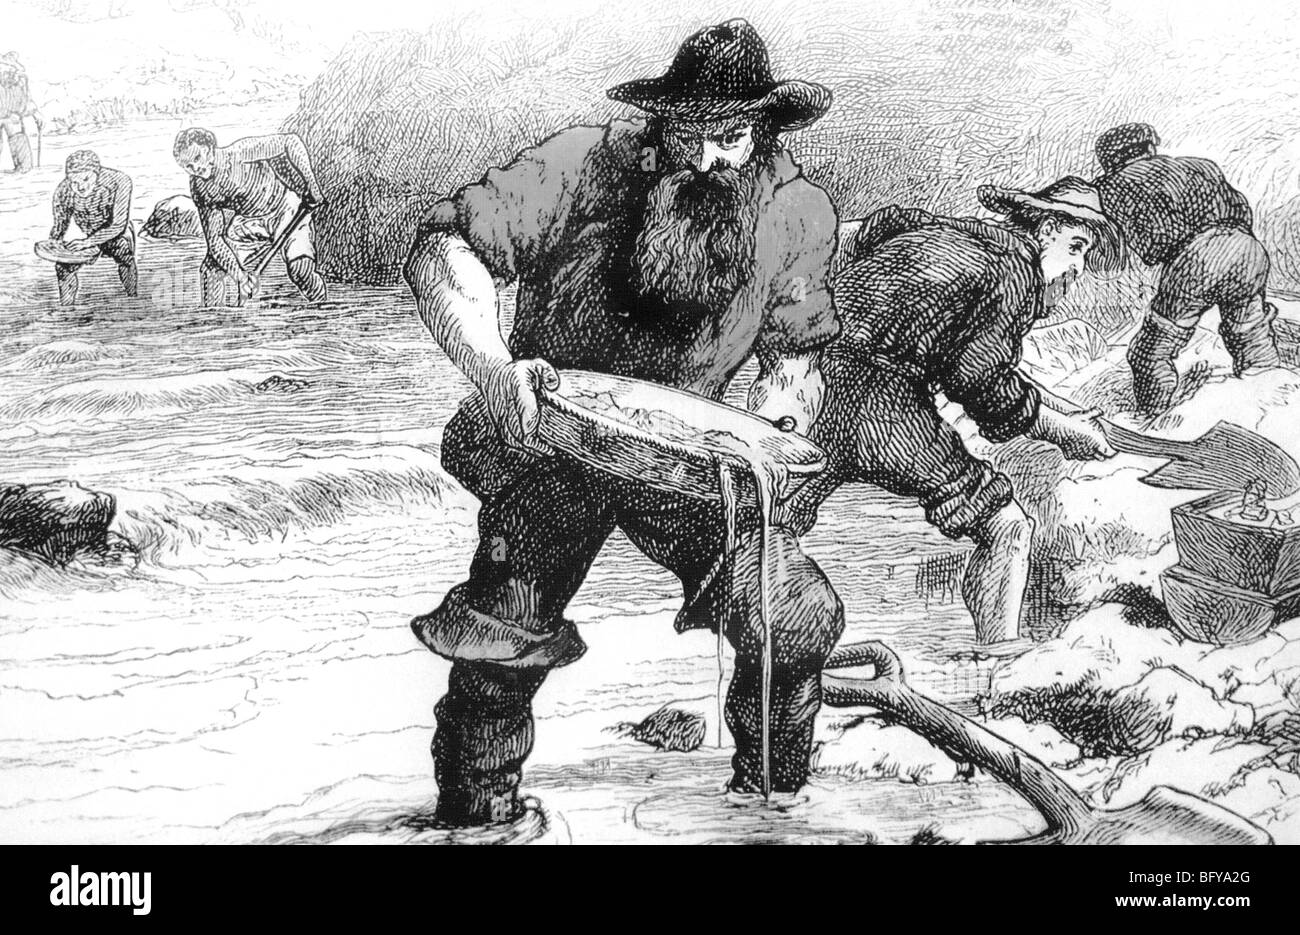 PANNING FOR GOLD during the California gold rush in 1849 - Stock Image